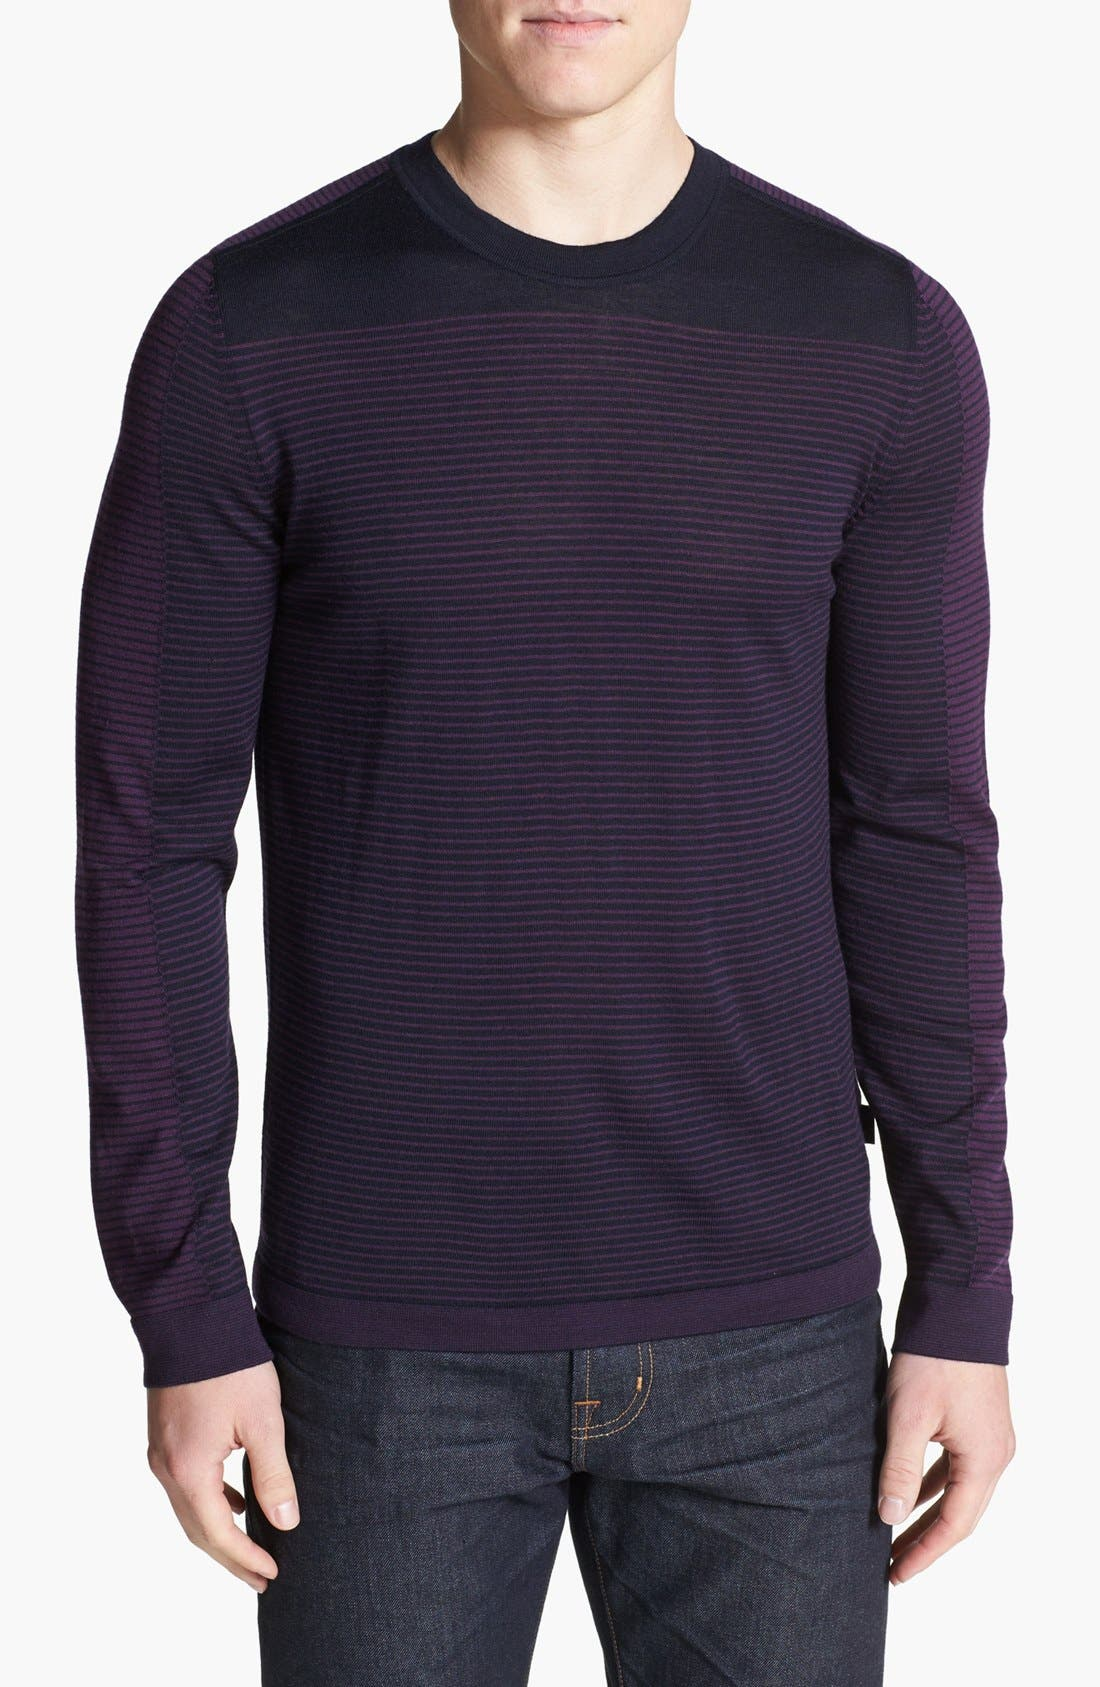 Alternate Image 1 Selected - BOSS HUGO BOSS 'Merro' Merino Wool Sweater